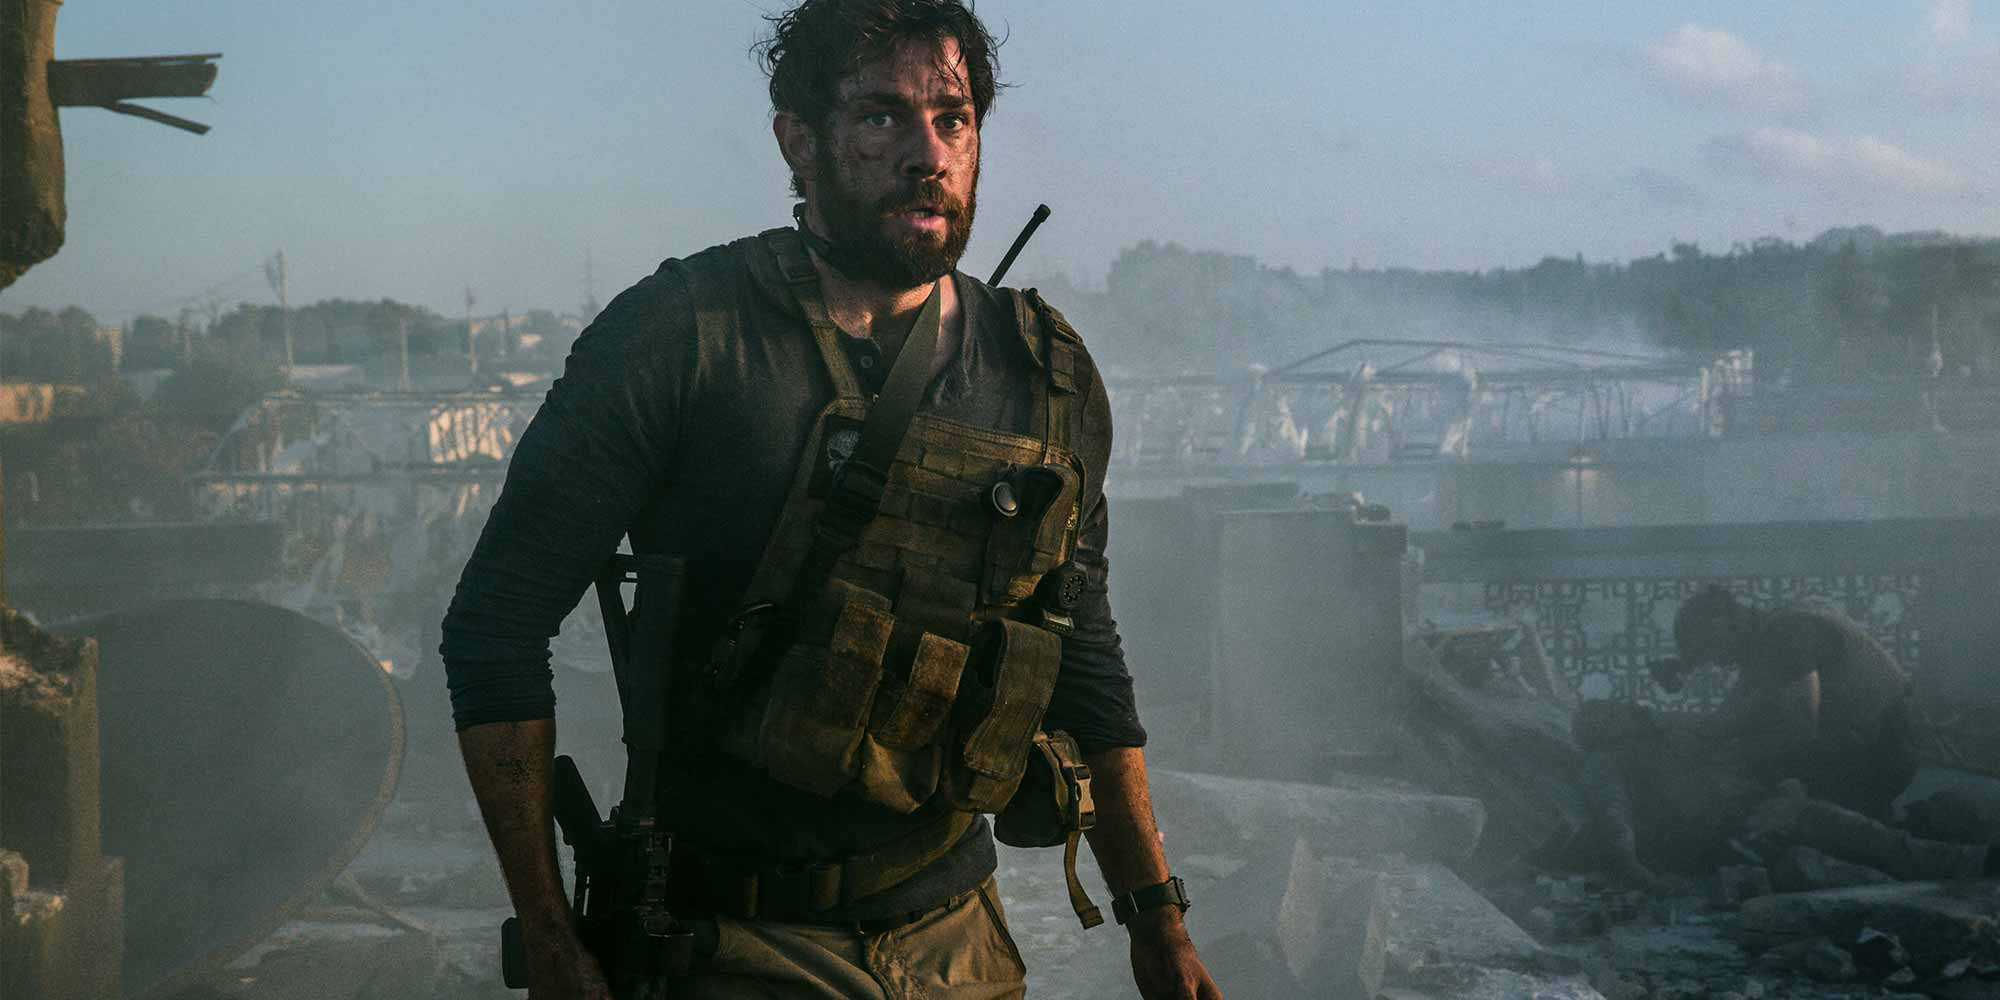 13 Hours: The Secret Soldiers of Benghazi - Header Image